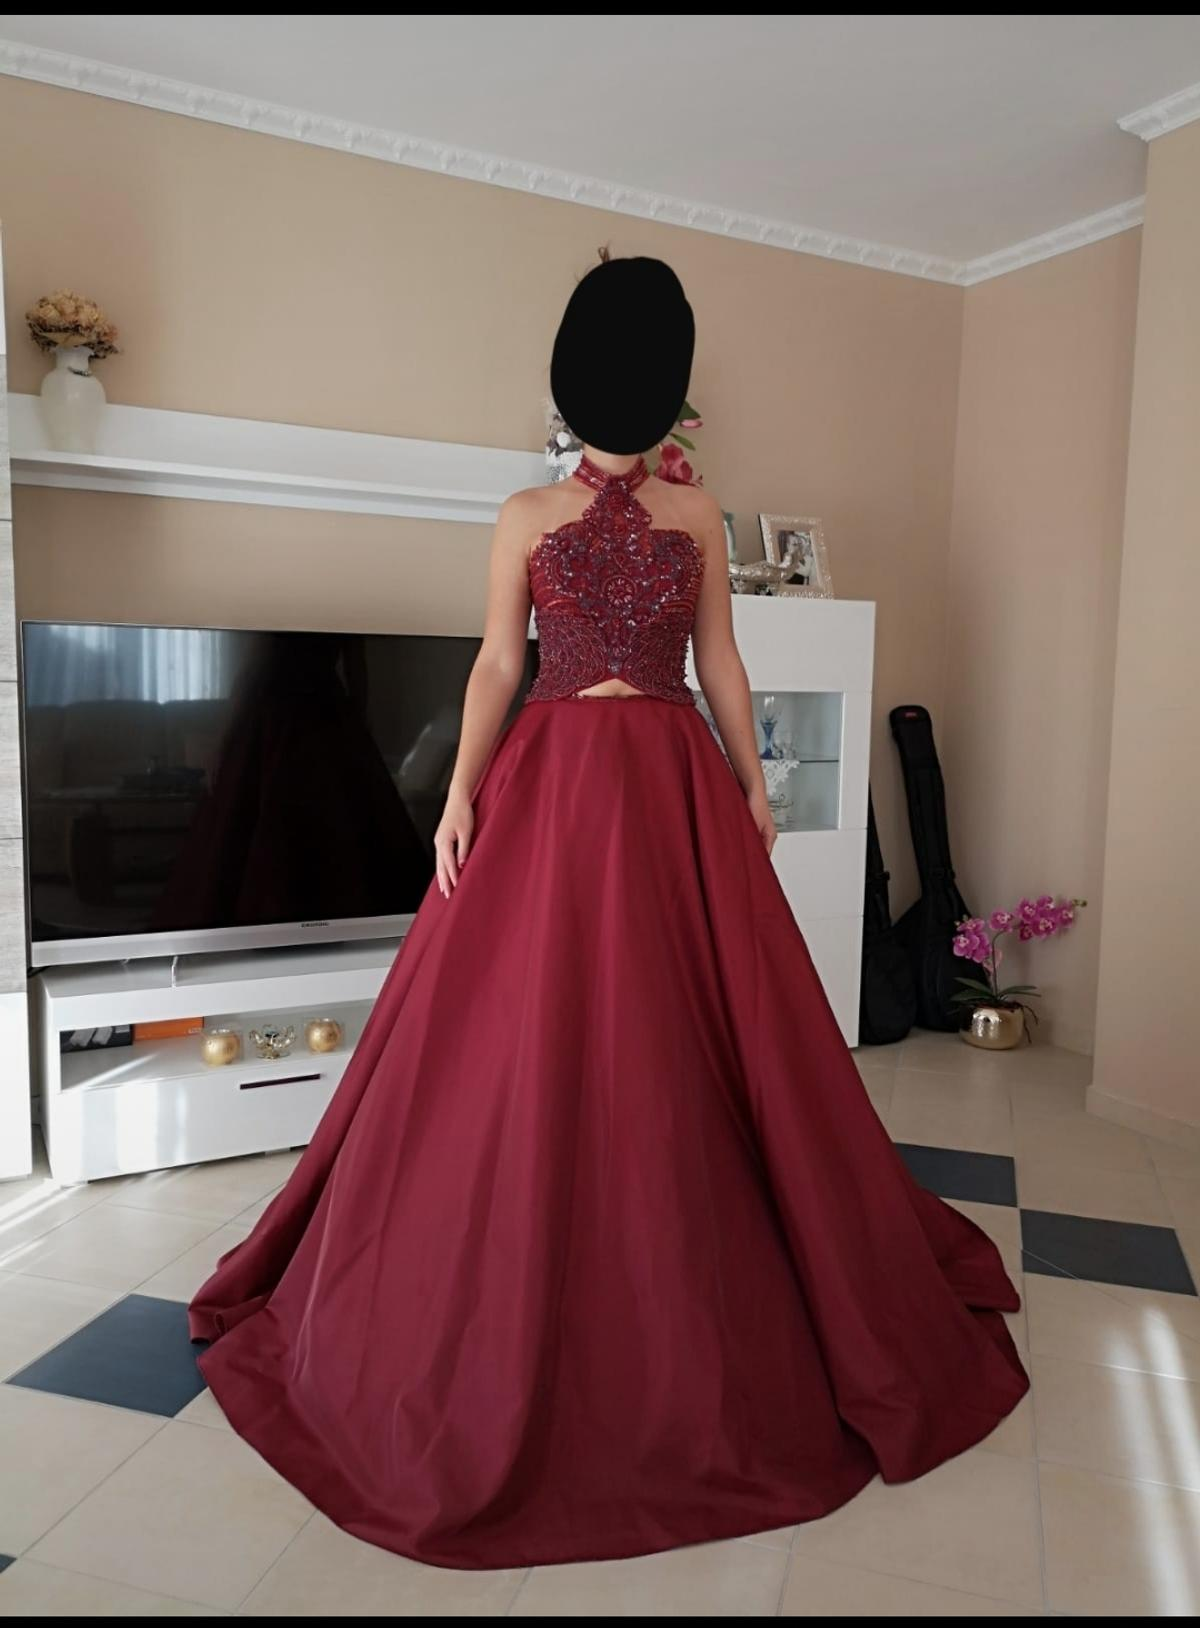 Hennakleid, Abendkleid, bauchfrei in 19 Ingolstadt for €19.19